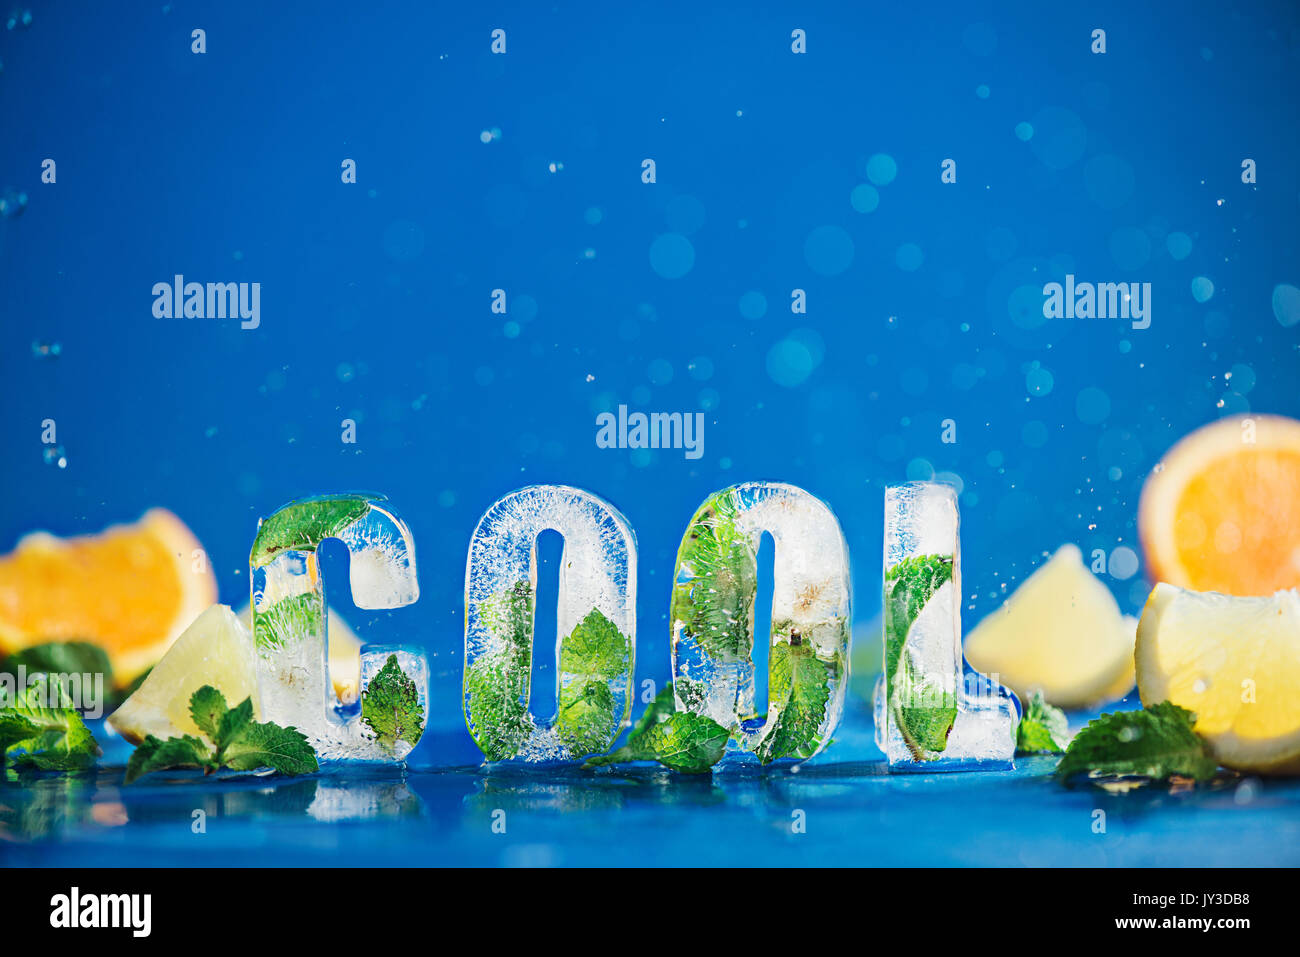 Ice cube lettering with frozen mint leaves, lemon slices and oranges on a blue background with water splashes. Text says Cool. - Stock Image